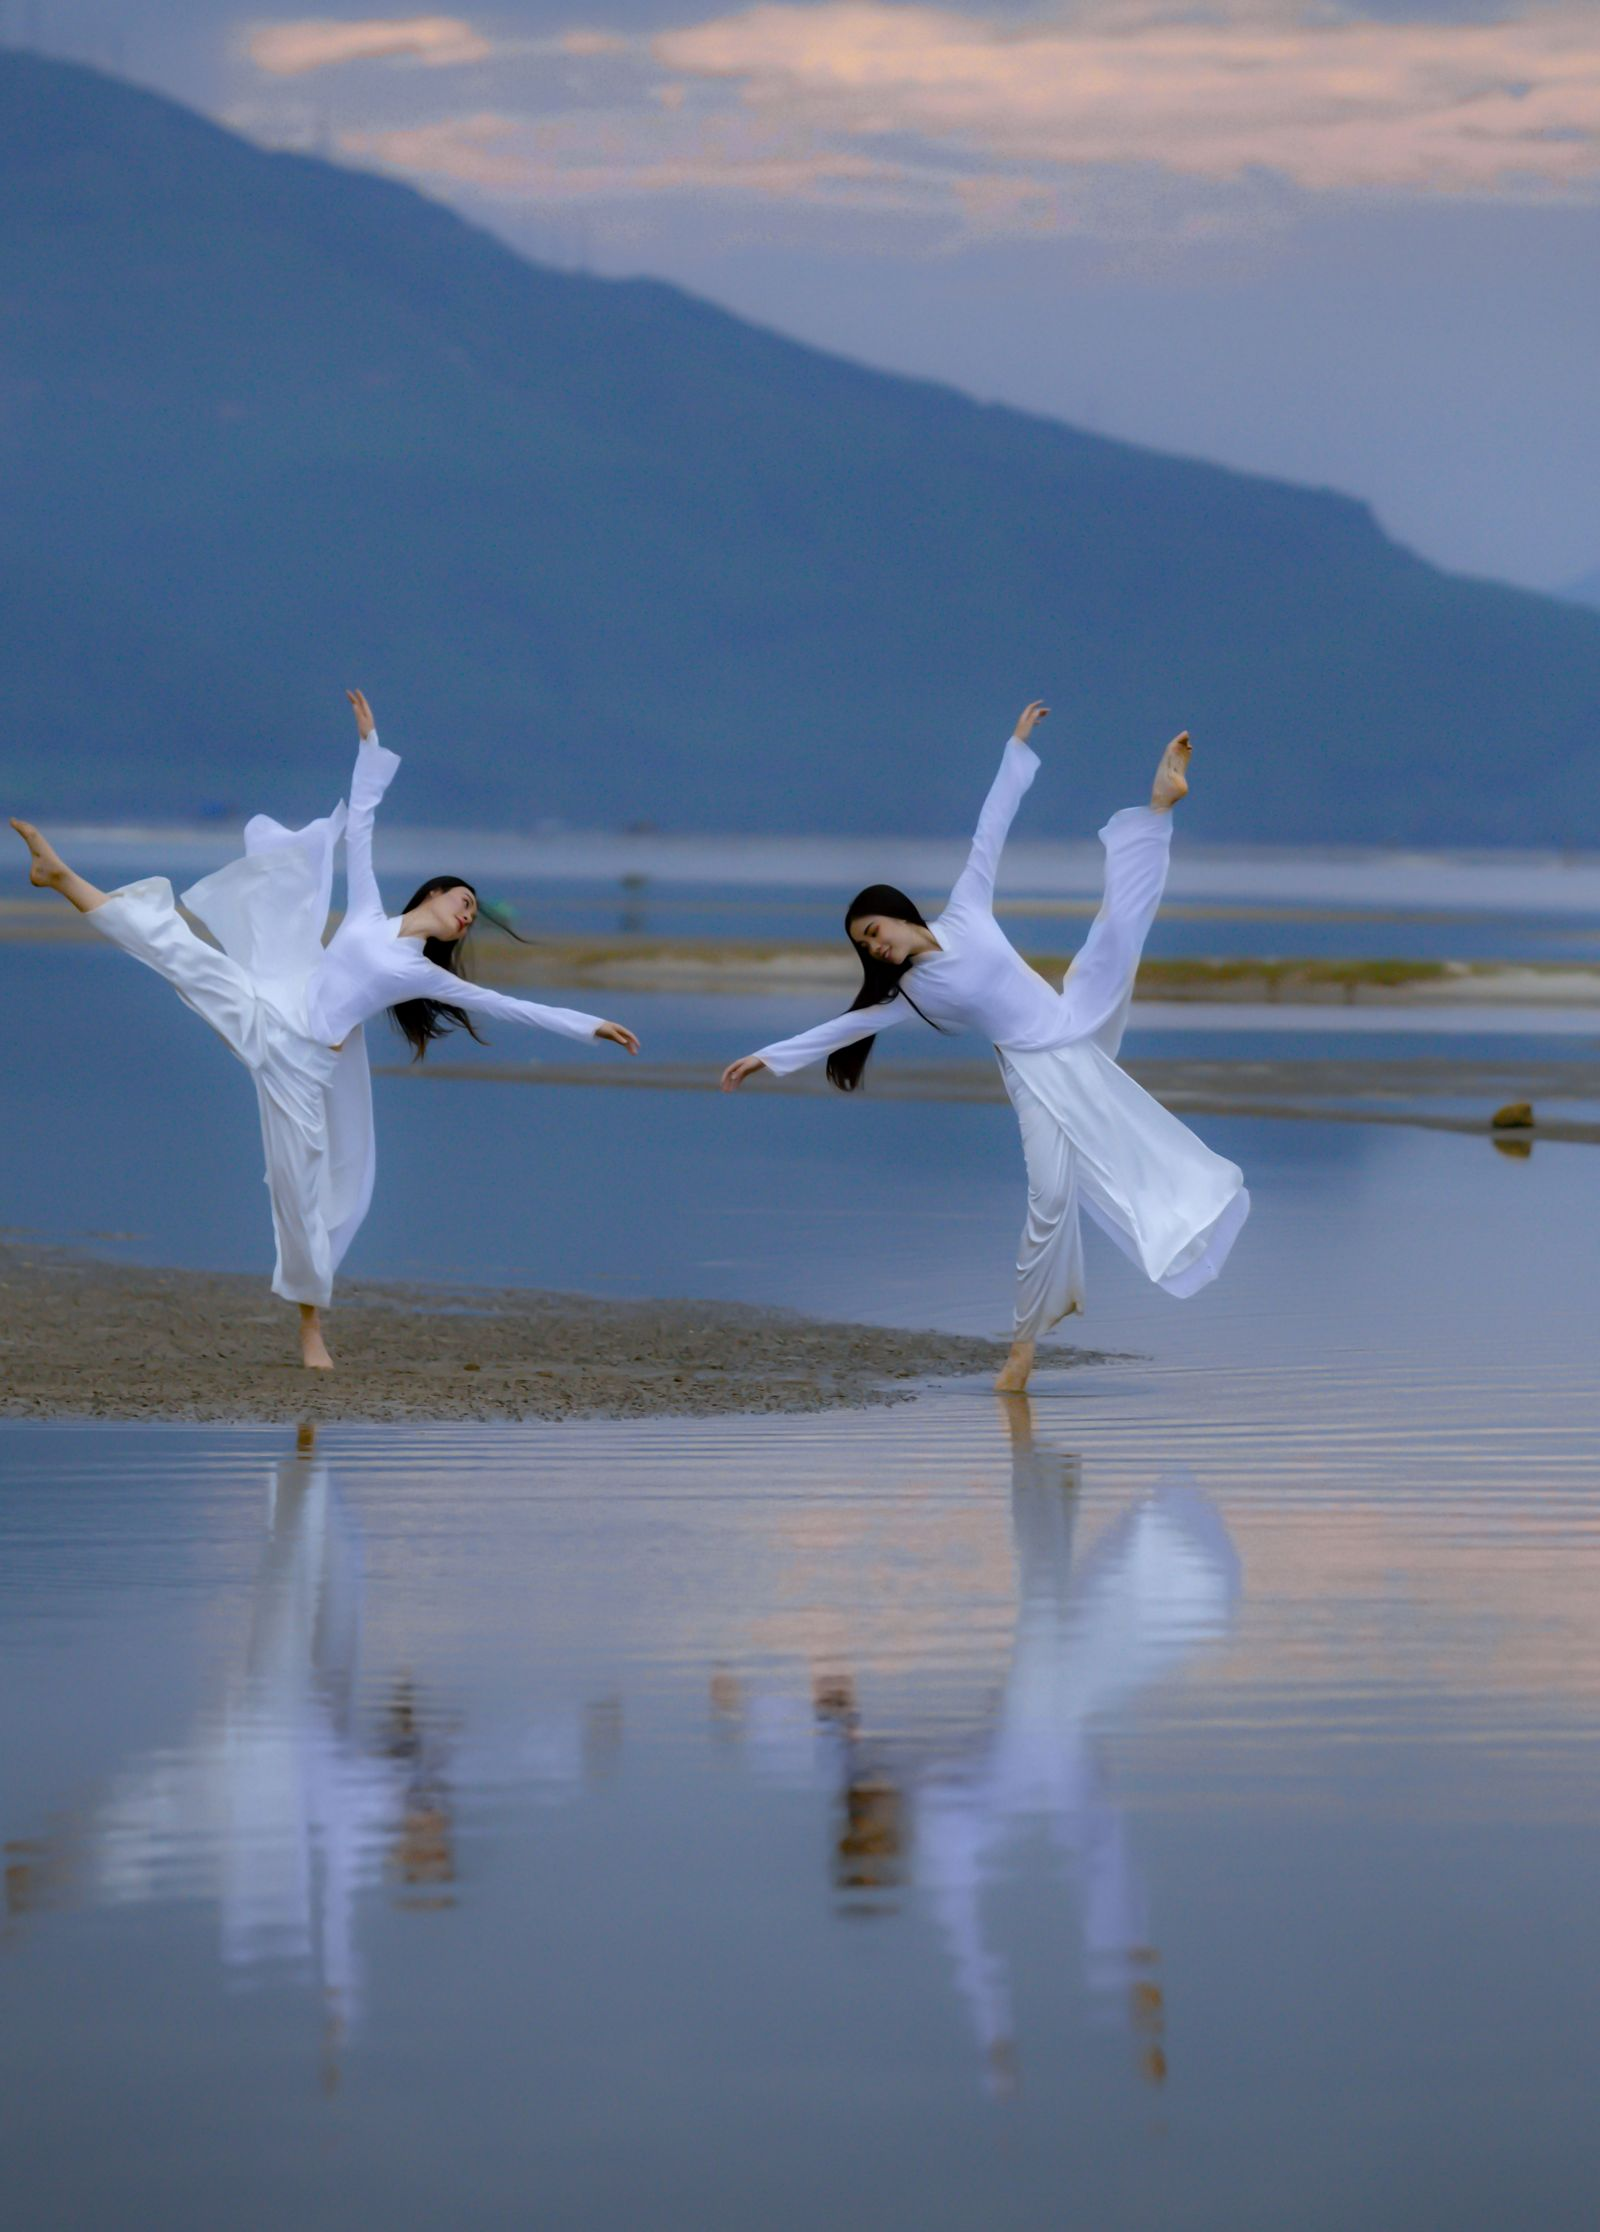 With a poised elegance, the two dancers seemed to blend in with the scenery to create an extremely eye-catching beauty